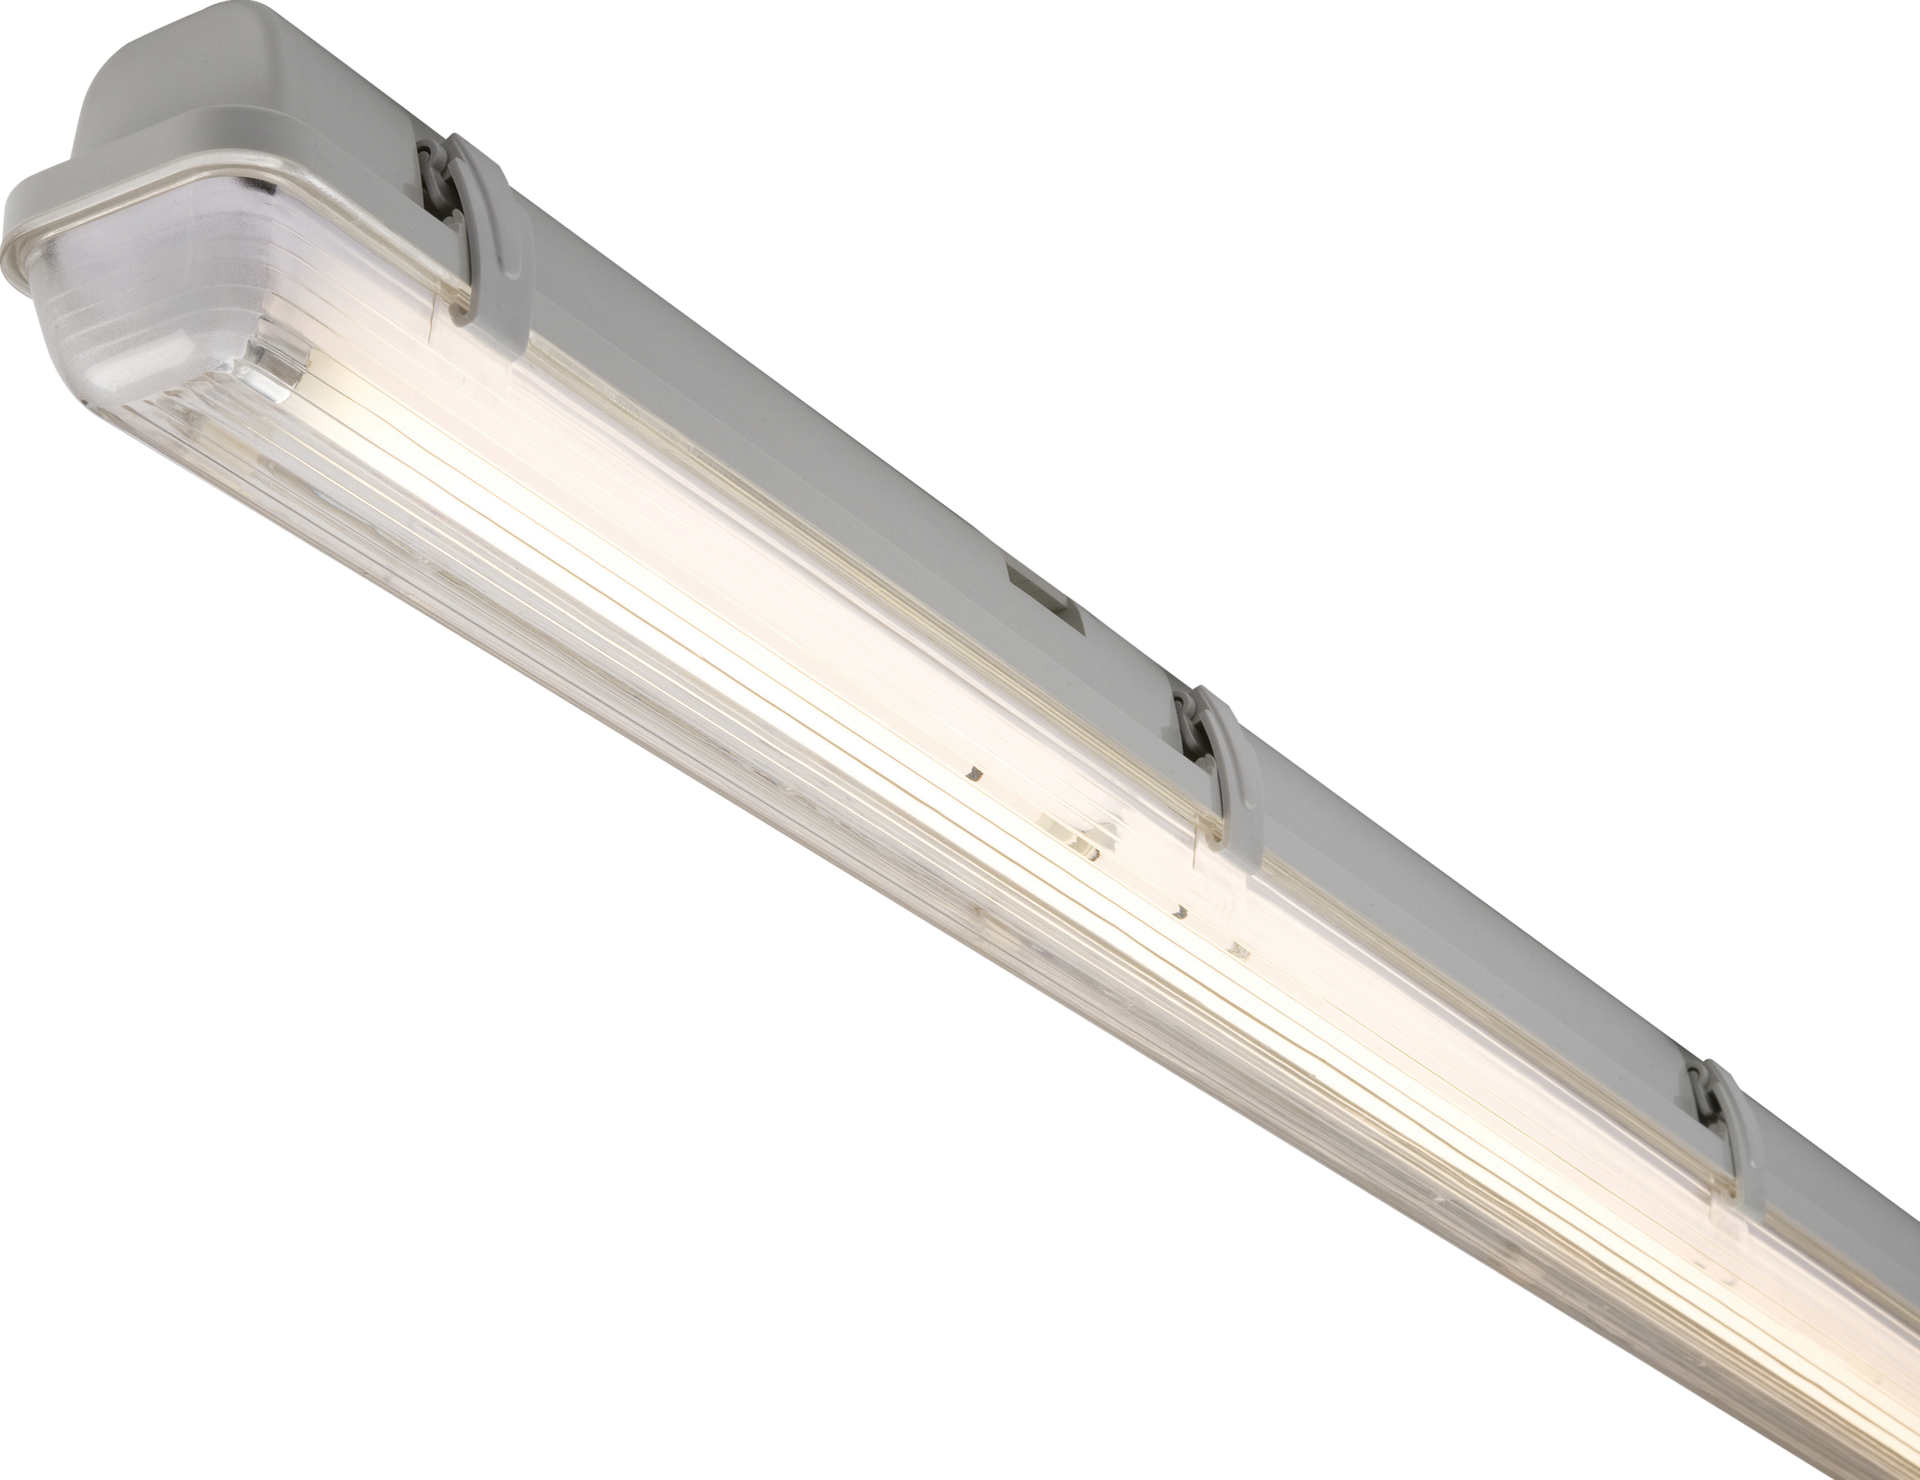 230V IP65 1X14W T5 HF Single Non-Corrosive Fluorescent Fitting 2ft